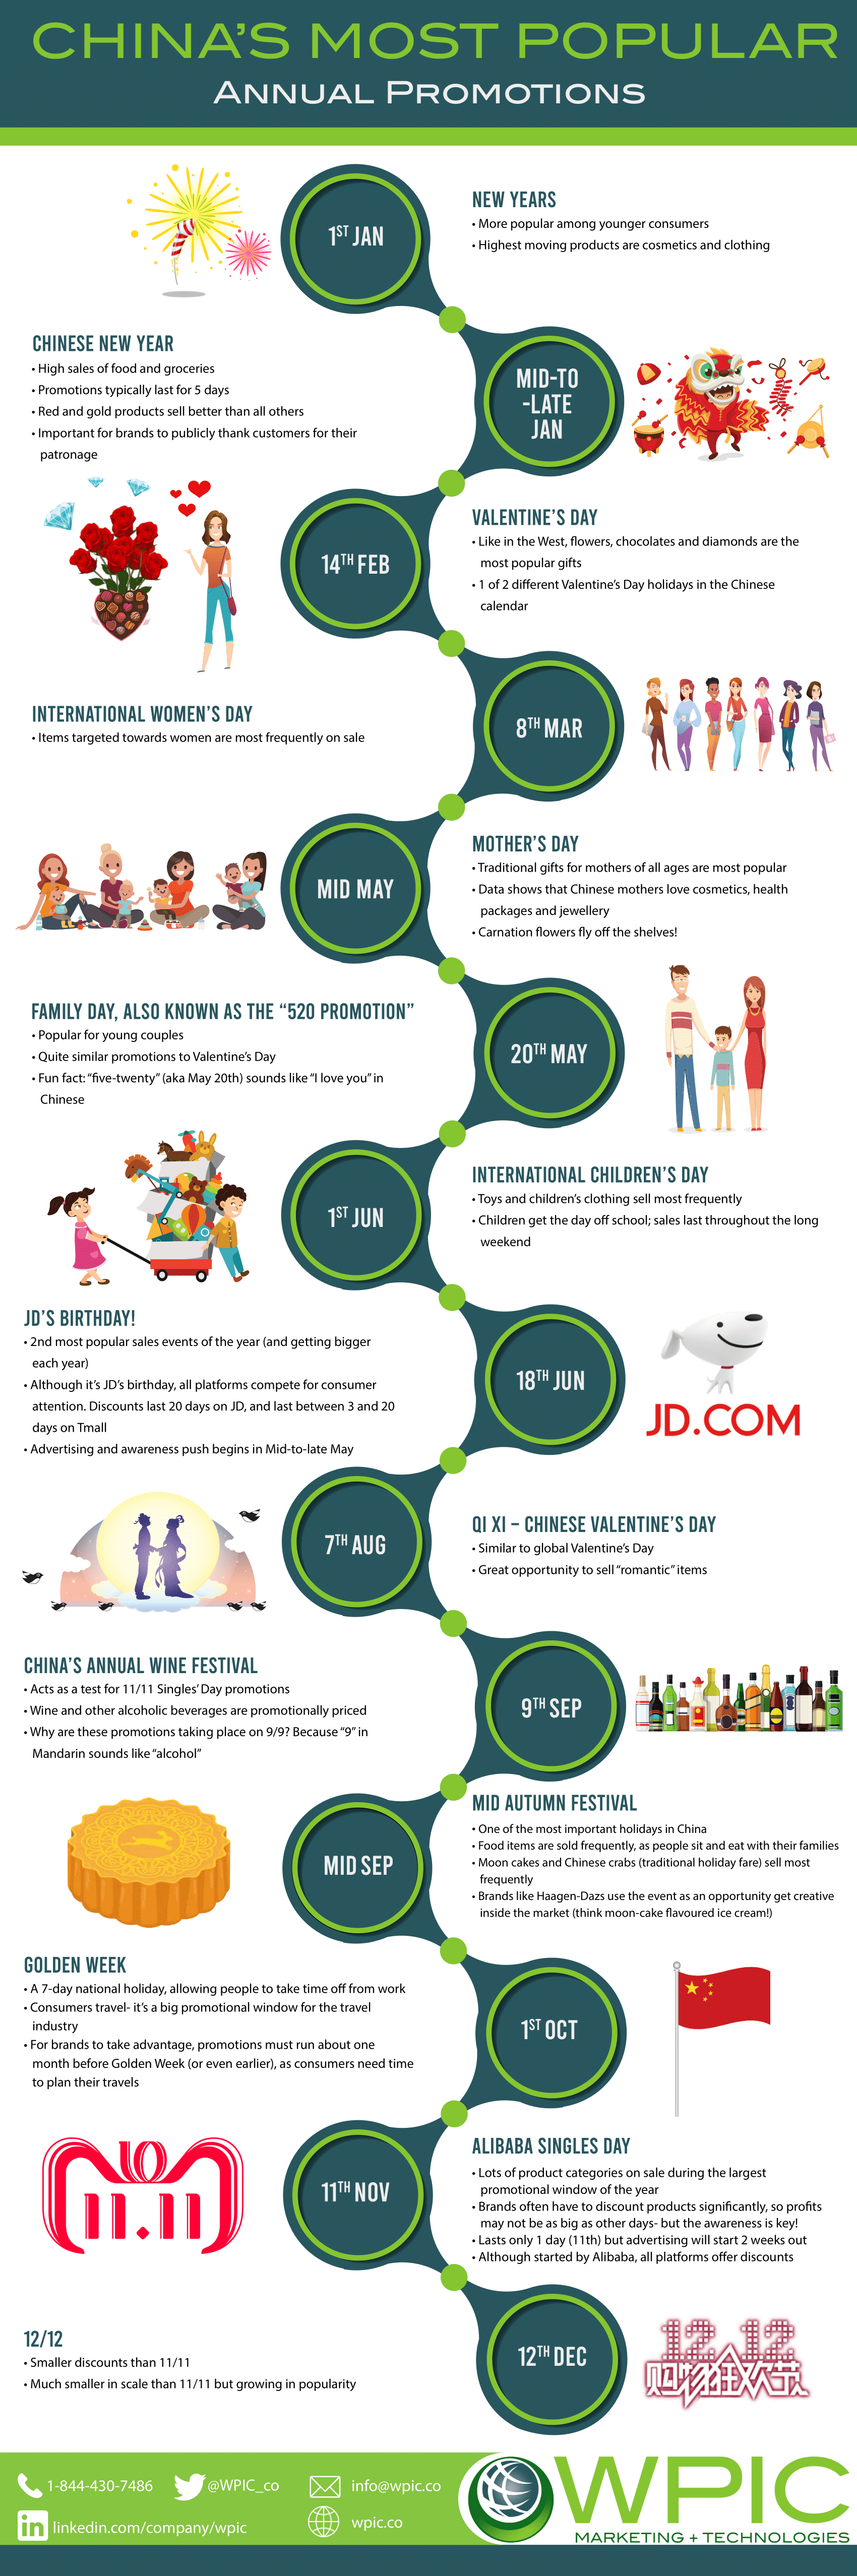 China's most popular annual promotions infographic